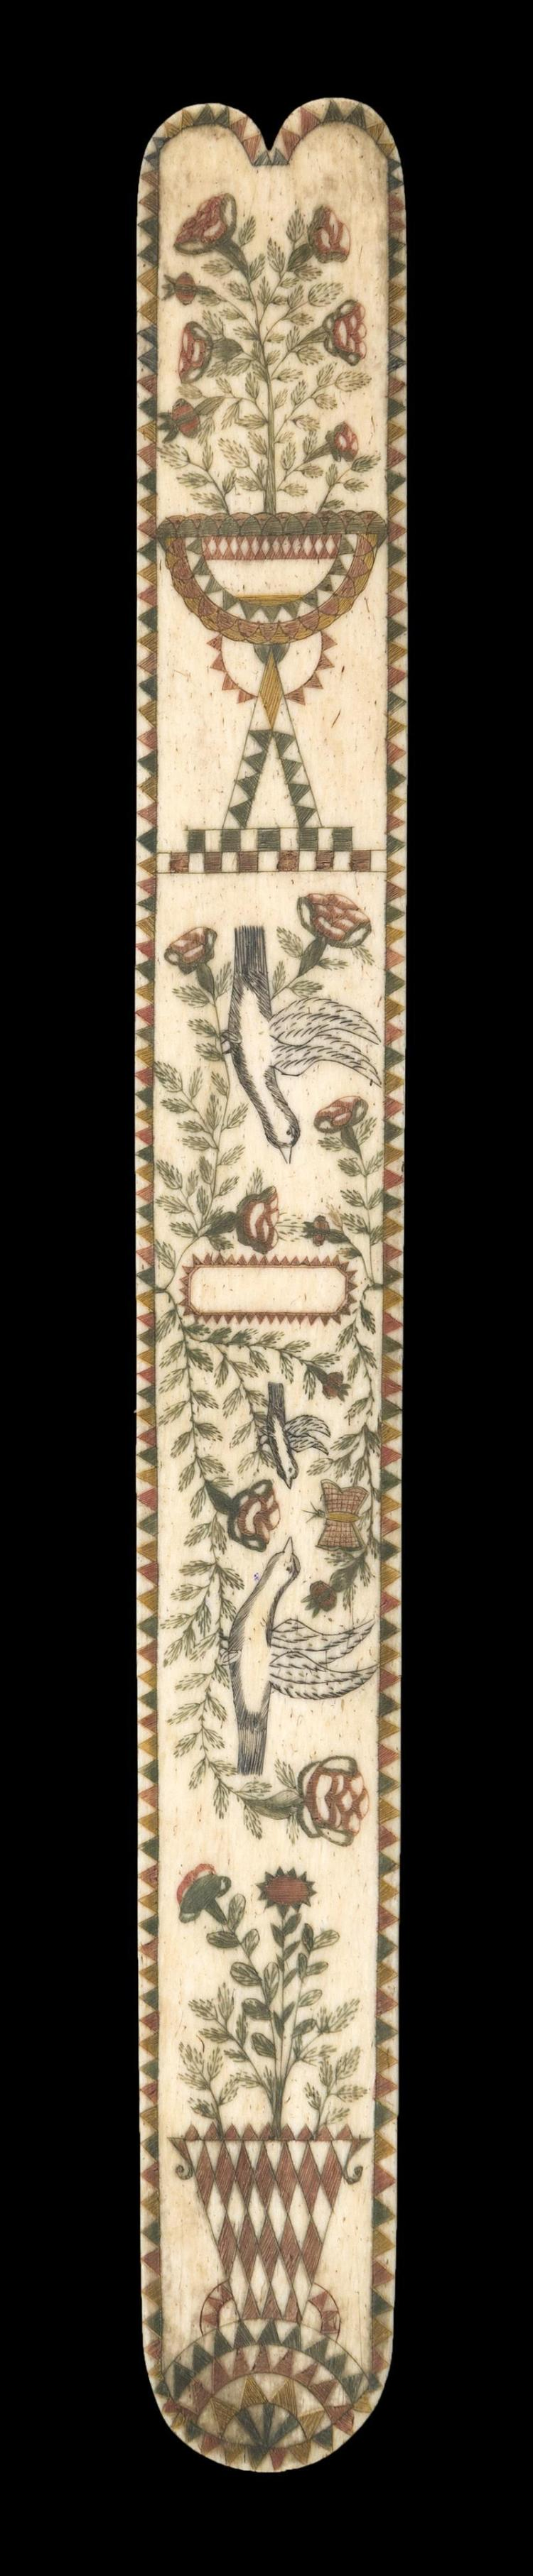 POLYCHROME SCRIMSHAW WHALEBONE BUSK Central design of three birds and a butterfly amongst foliage. Potted floral plant at each end....